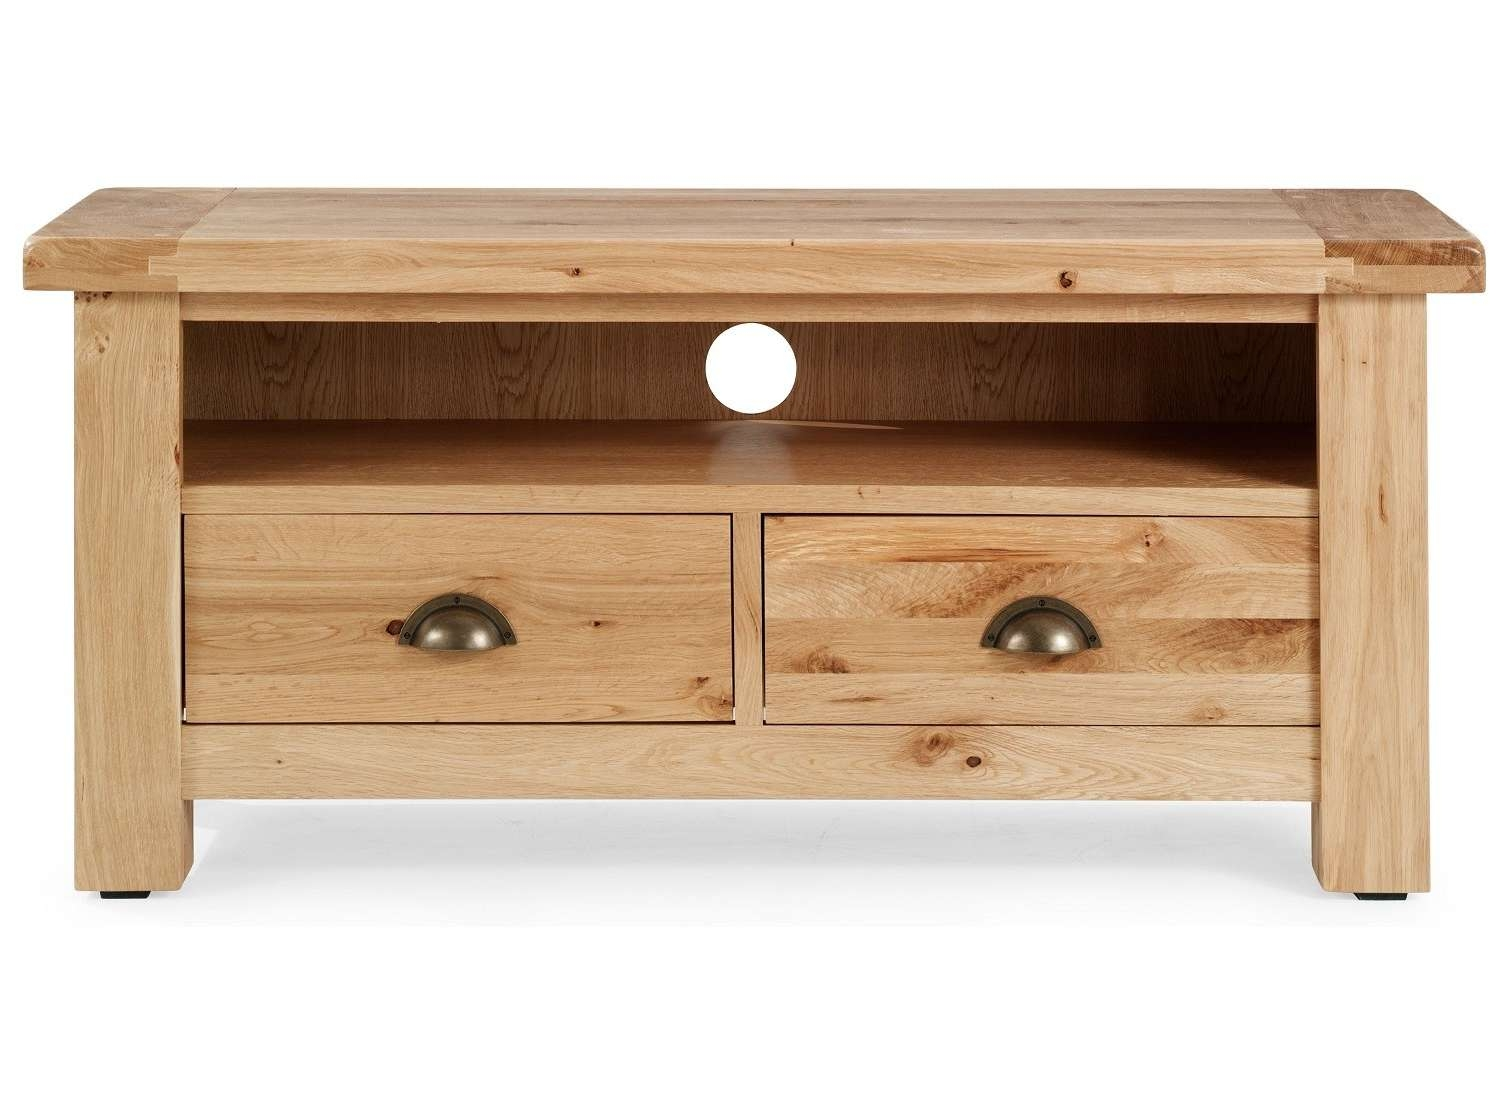 Normandy Rustic French Oak Tv Cabinet | Oak Furniture Uk With Regard To Rustic Corner Tv Cabinets (View 17 of 20)